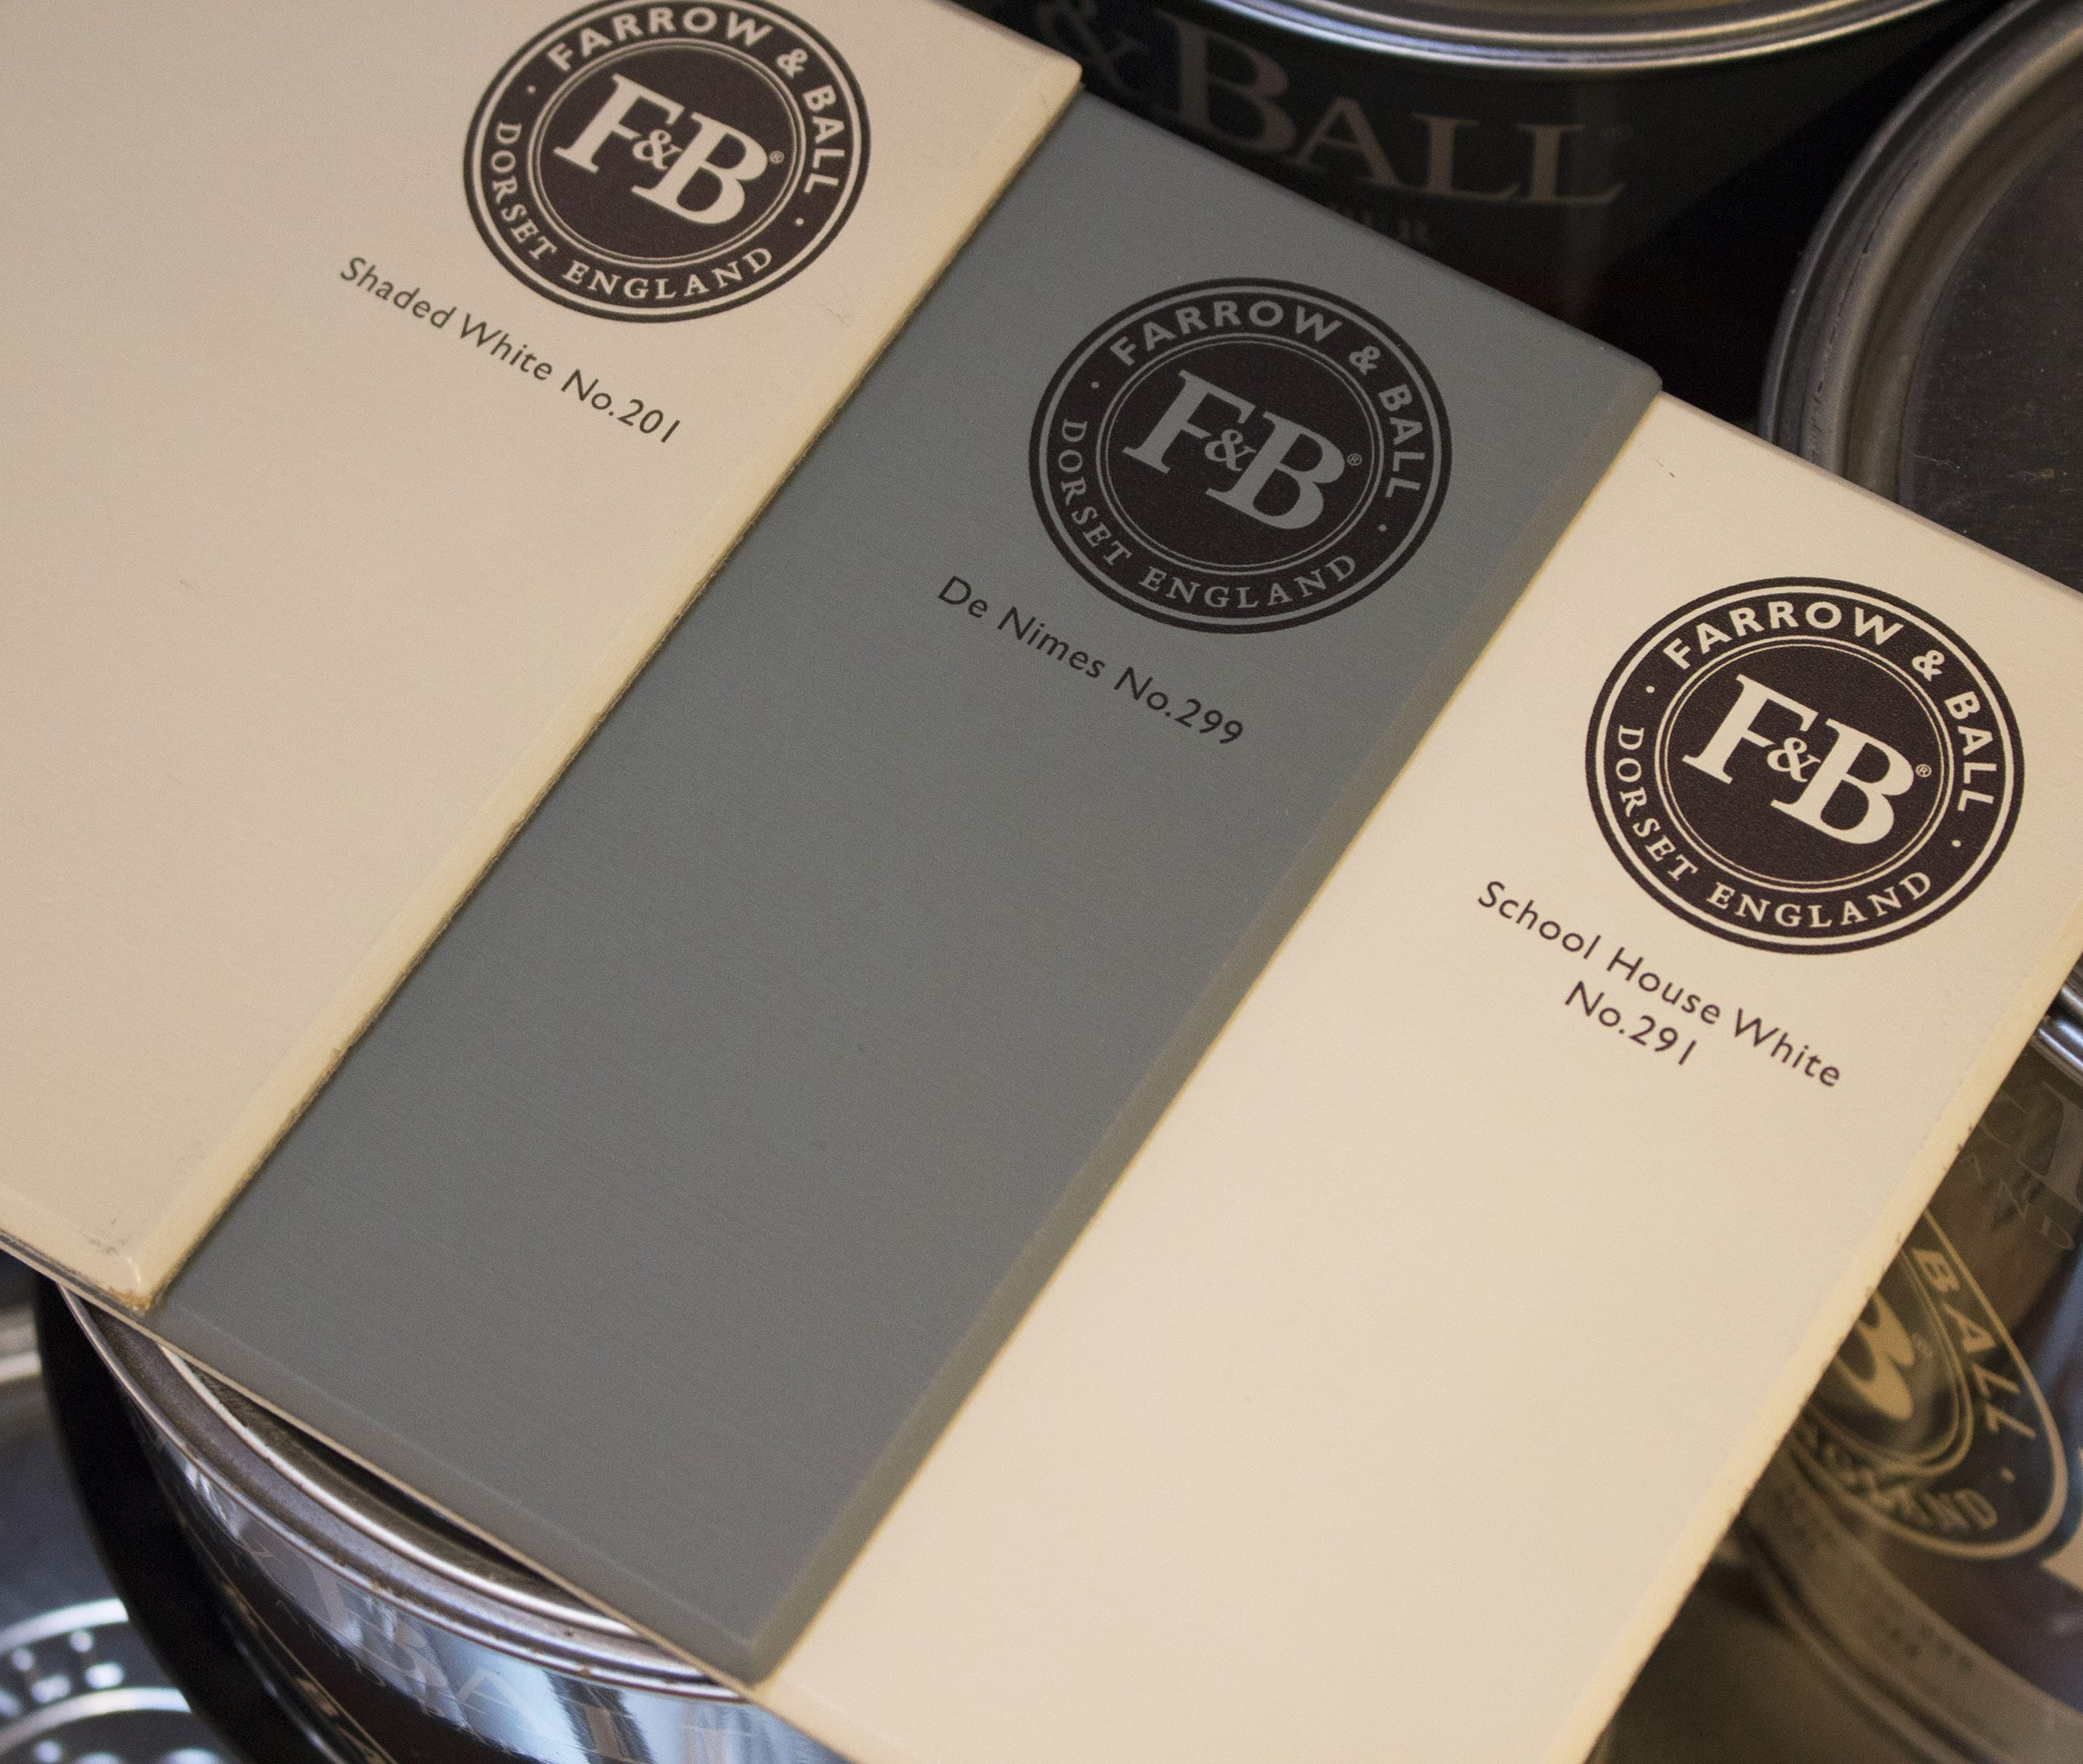 farrow&ball, farrow and ball, paint, decorating, paint brush, de nimes